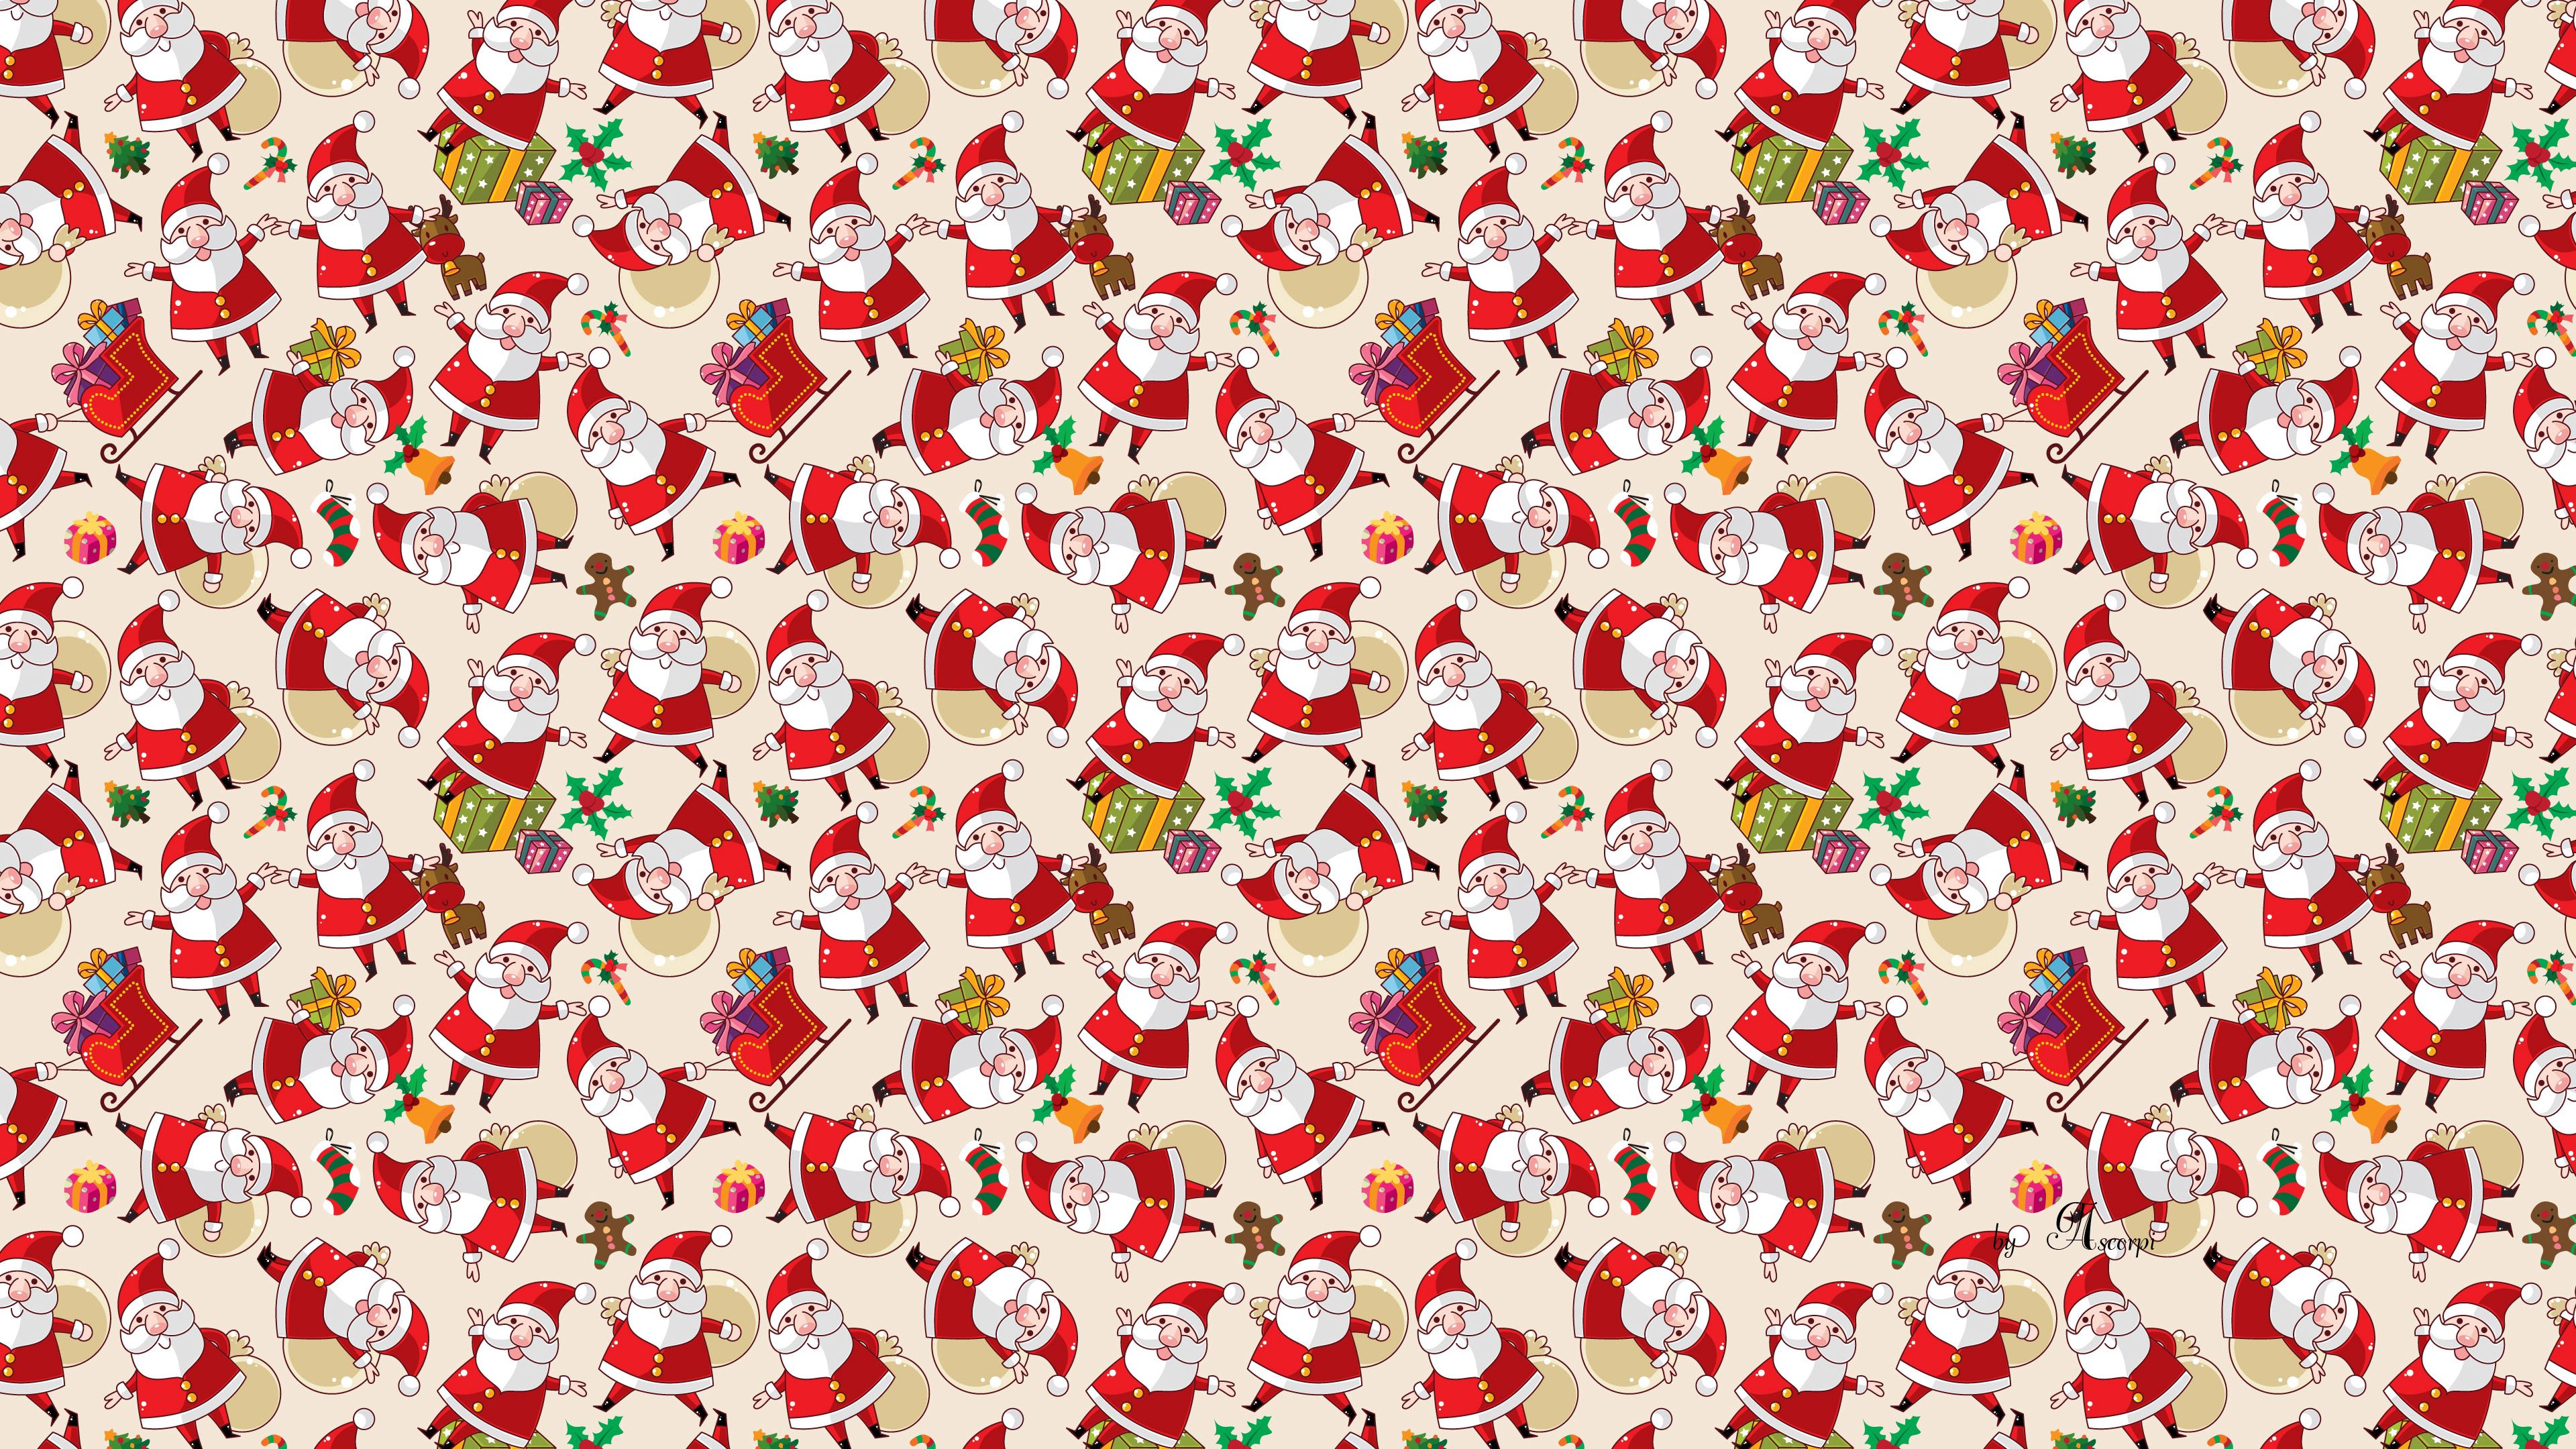 134986 download wallpaper Background, Santa Claus, Pictures, Texture, Textures screensavers and pictures for free